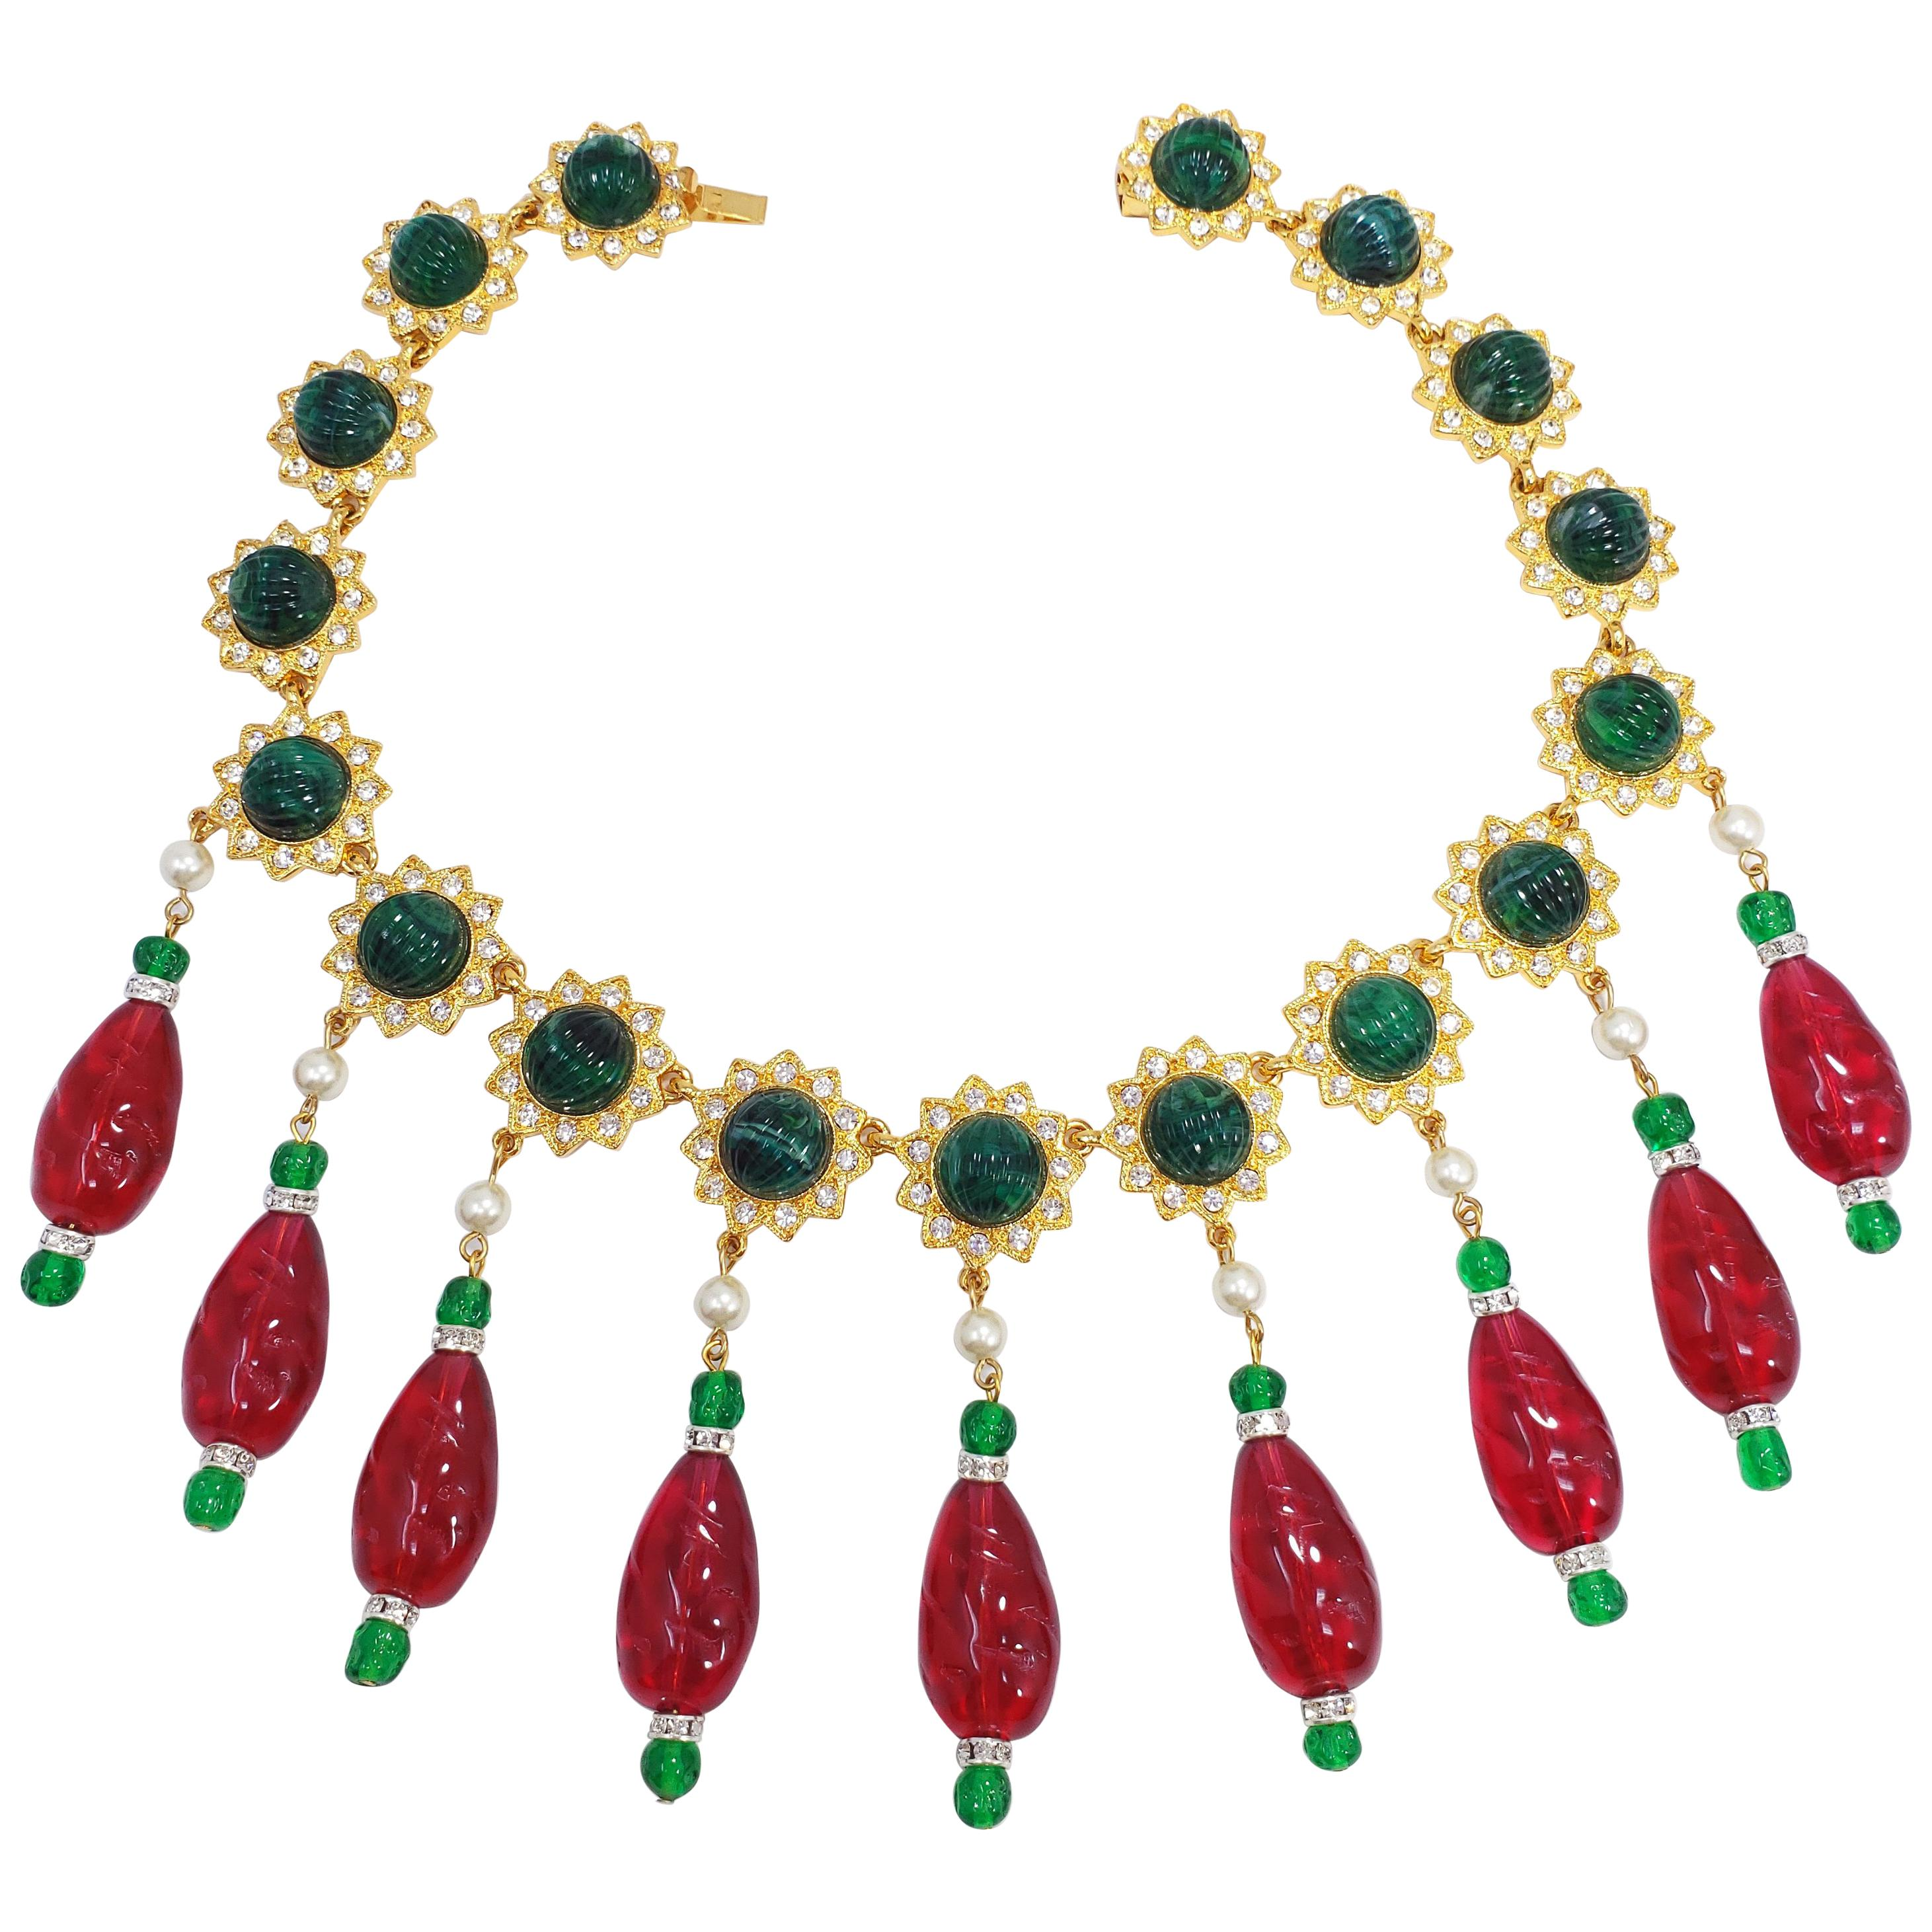 106ec26a48682 KJL Kenneth Jay Lane Red and Green Drop Accents Necklace w Faux Pearls,  Crystals